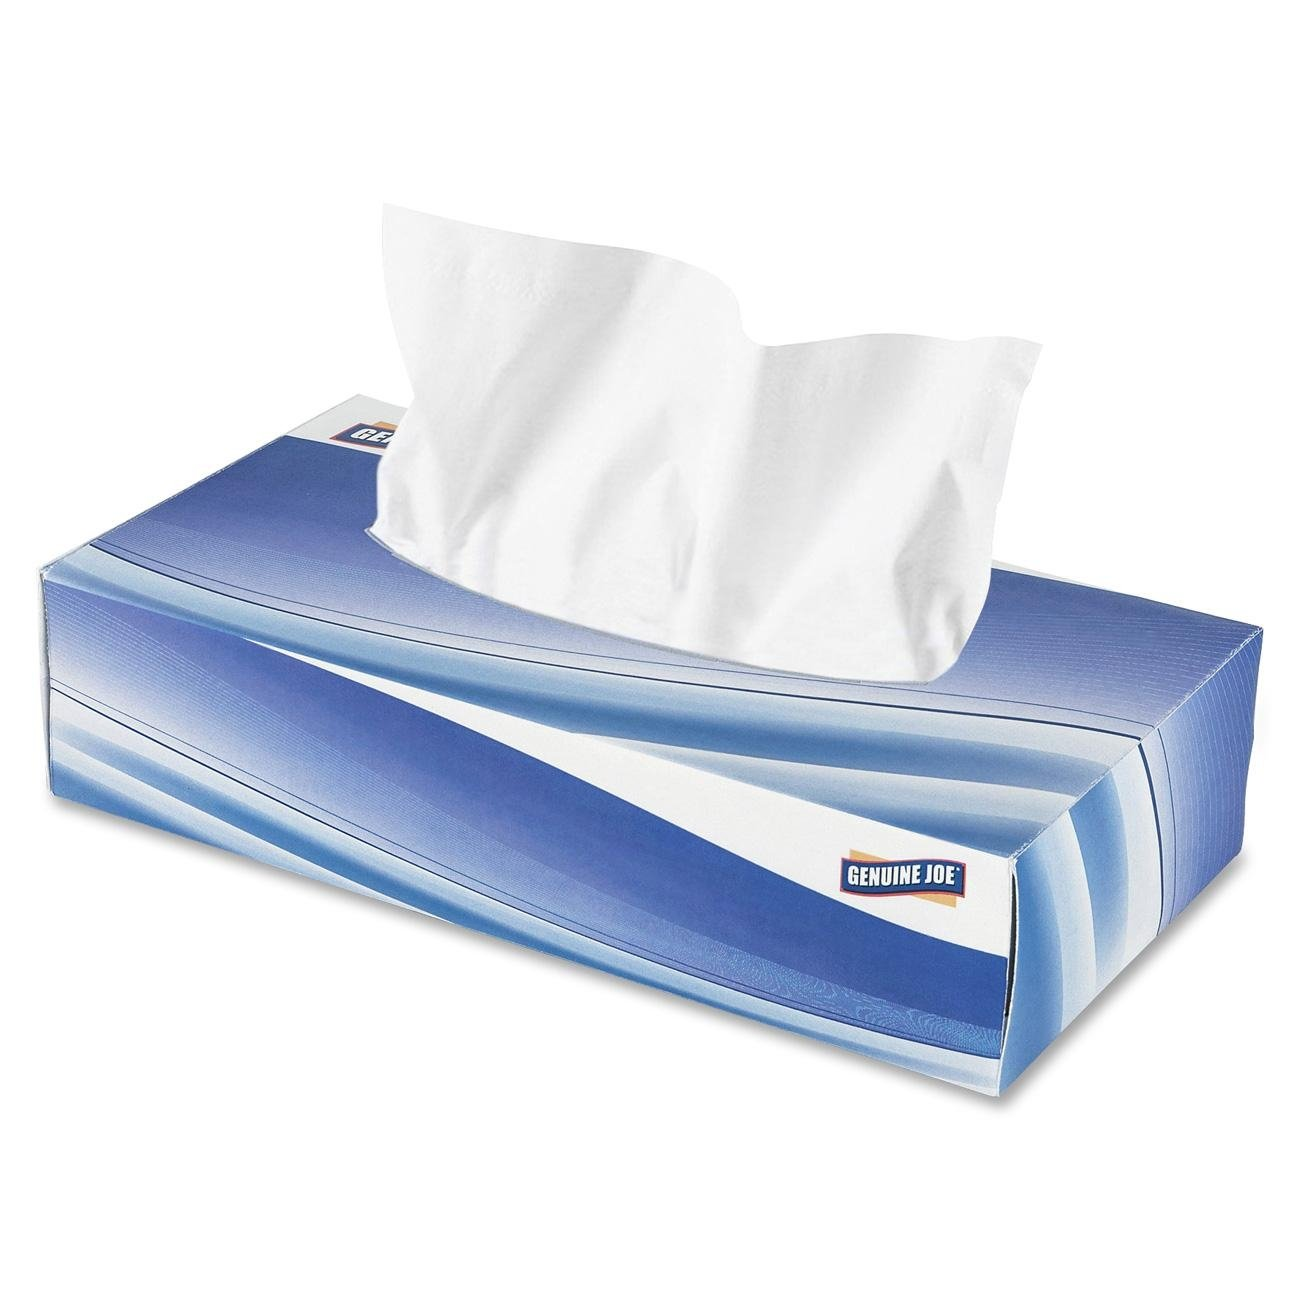 Genuine Joe GJO26100 Poly 2-Ply Facial Tissue, White (Case of 30 Boxes, 100 sheets per Box)